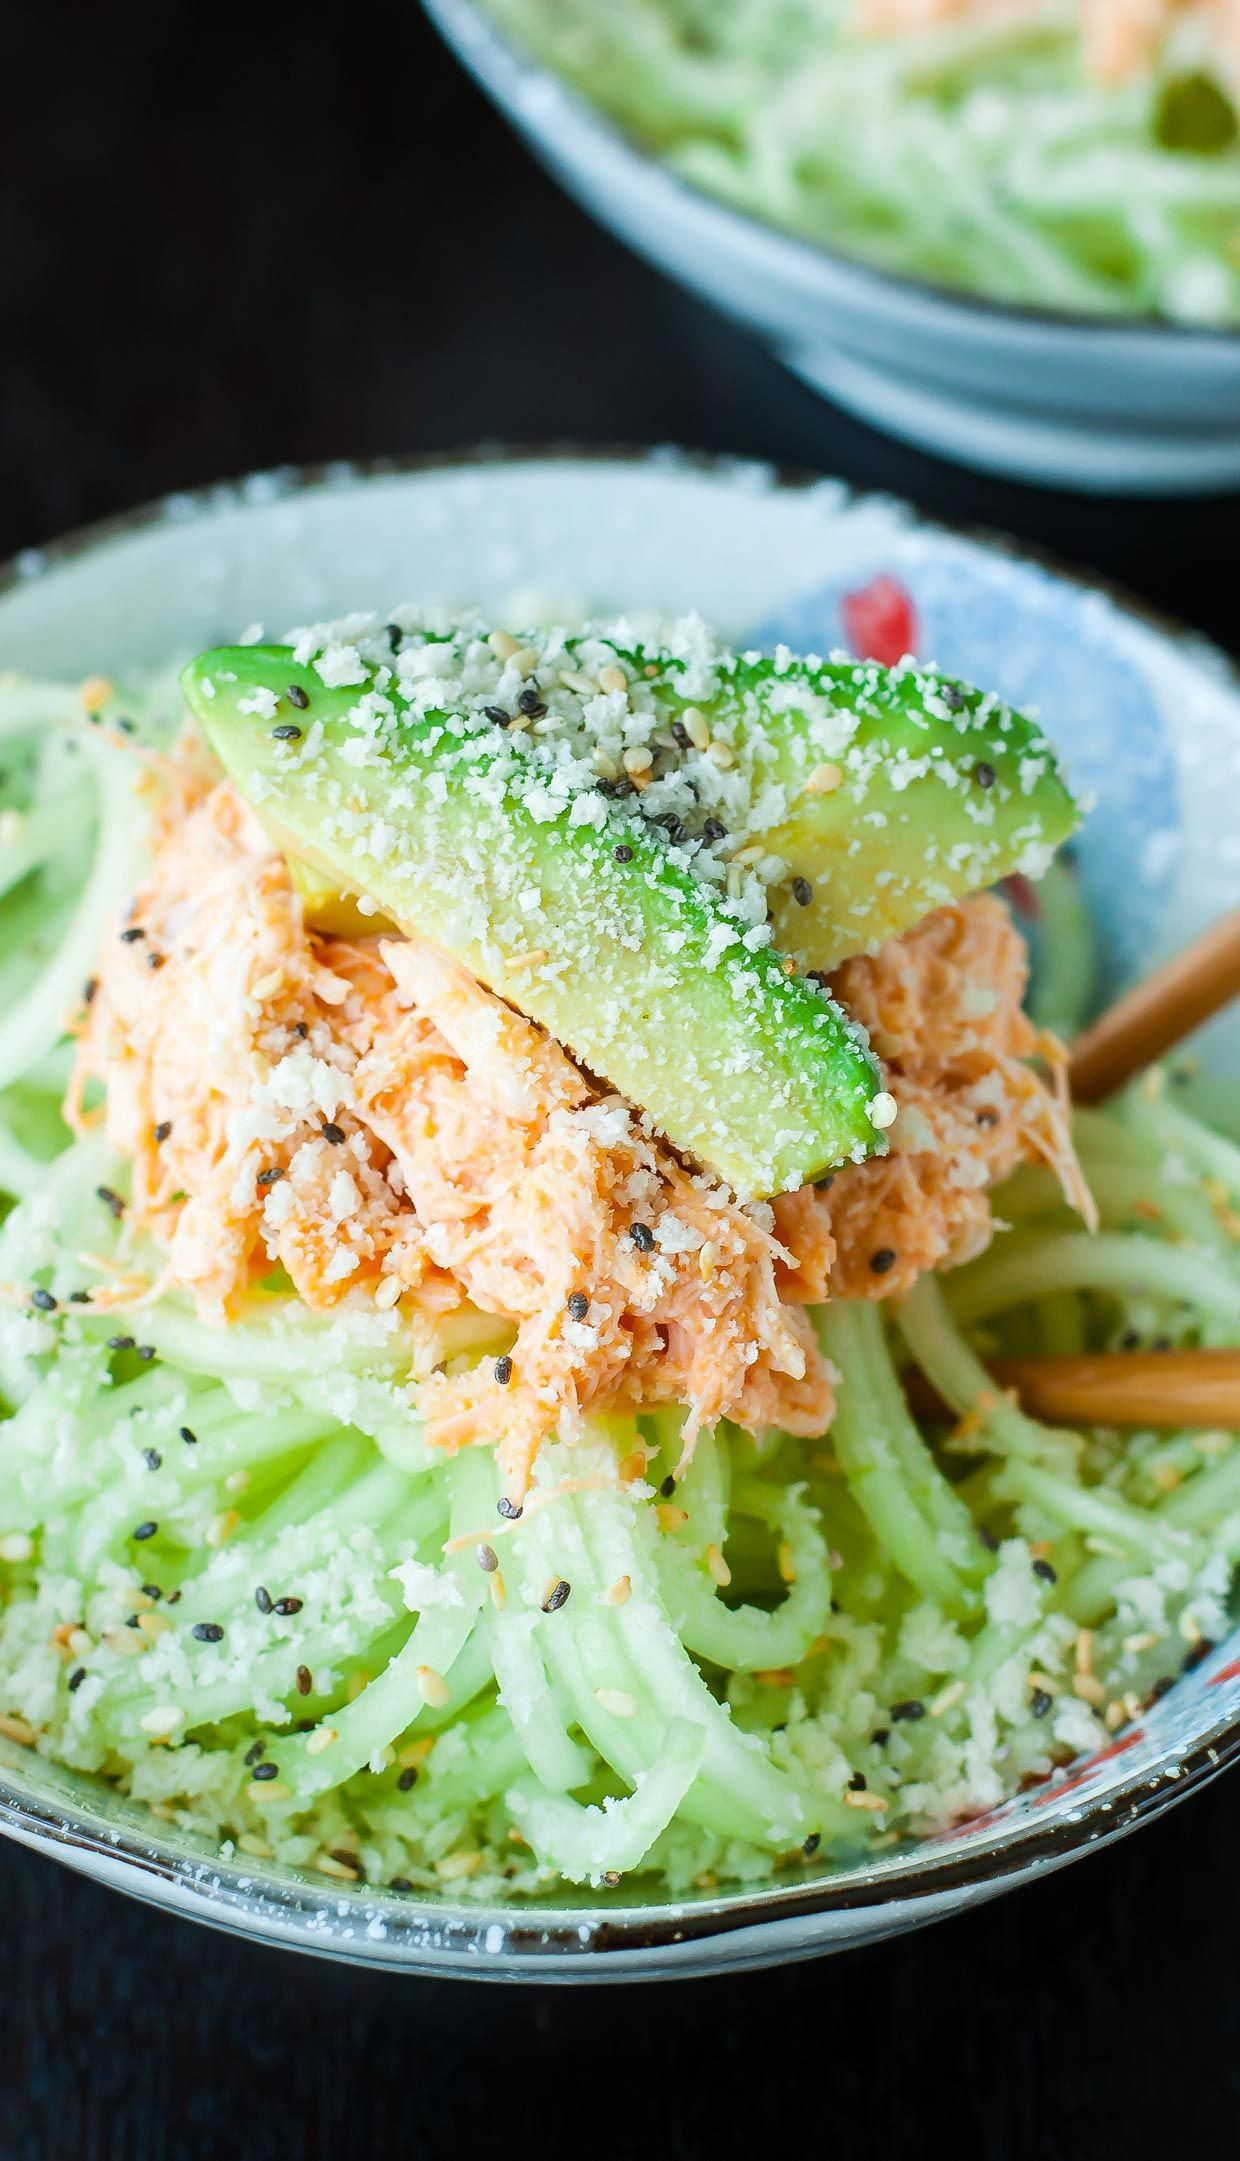 This Spicy Sriracha Crab and Cucumber Salad is refreshing and flavorful!This Japanese-inspired kani salad is my absolute favorite sushi restaurant appetizer.